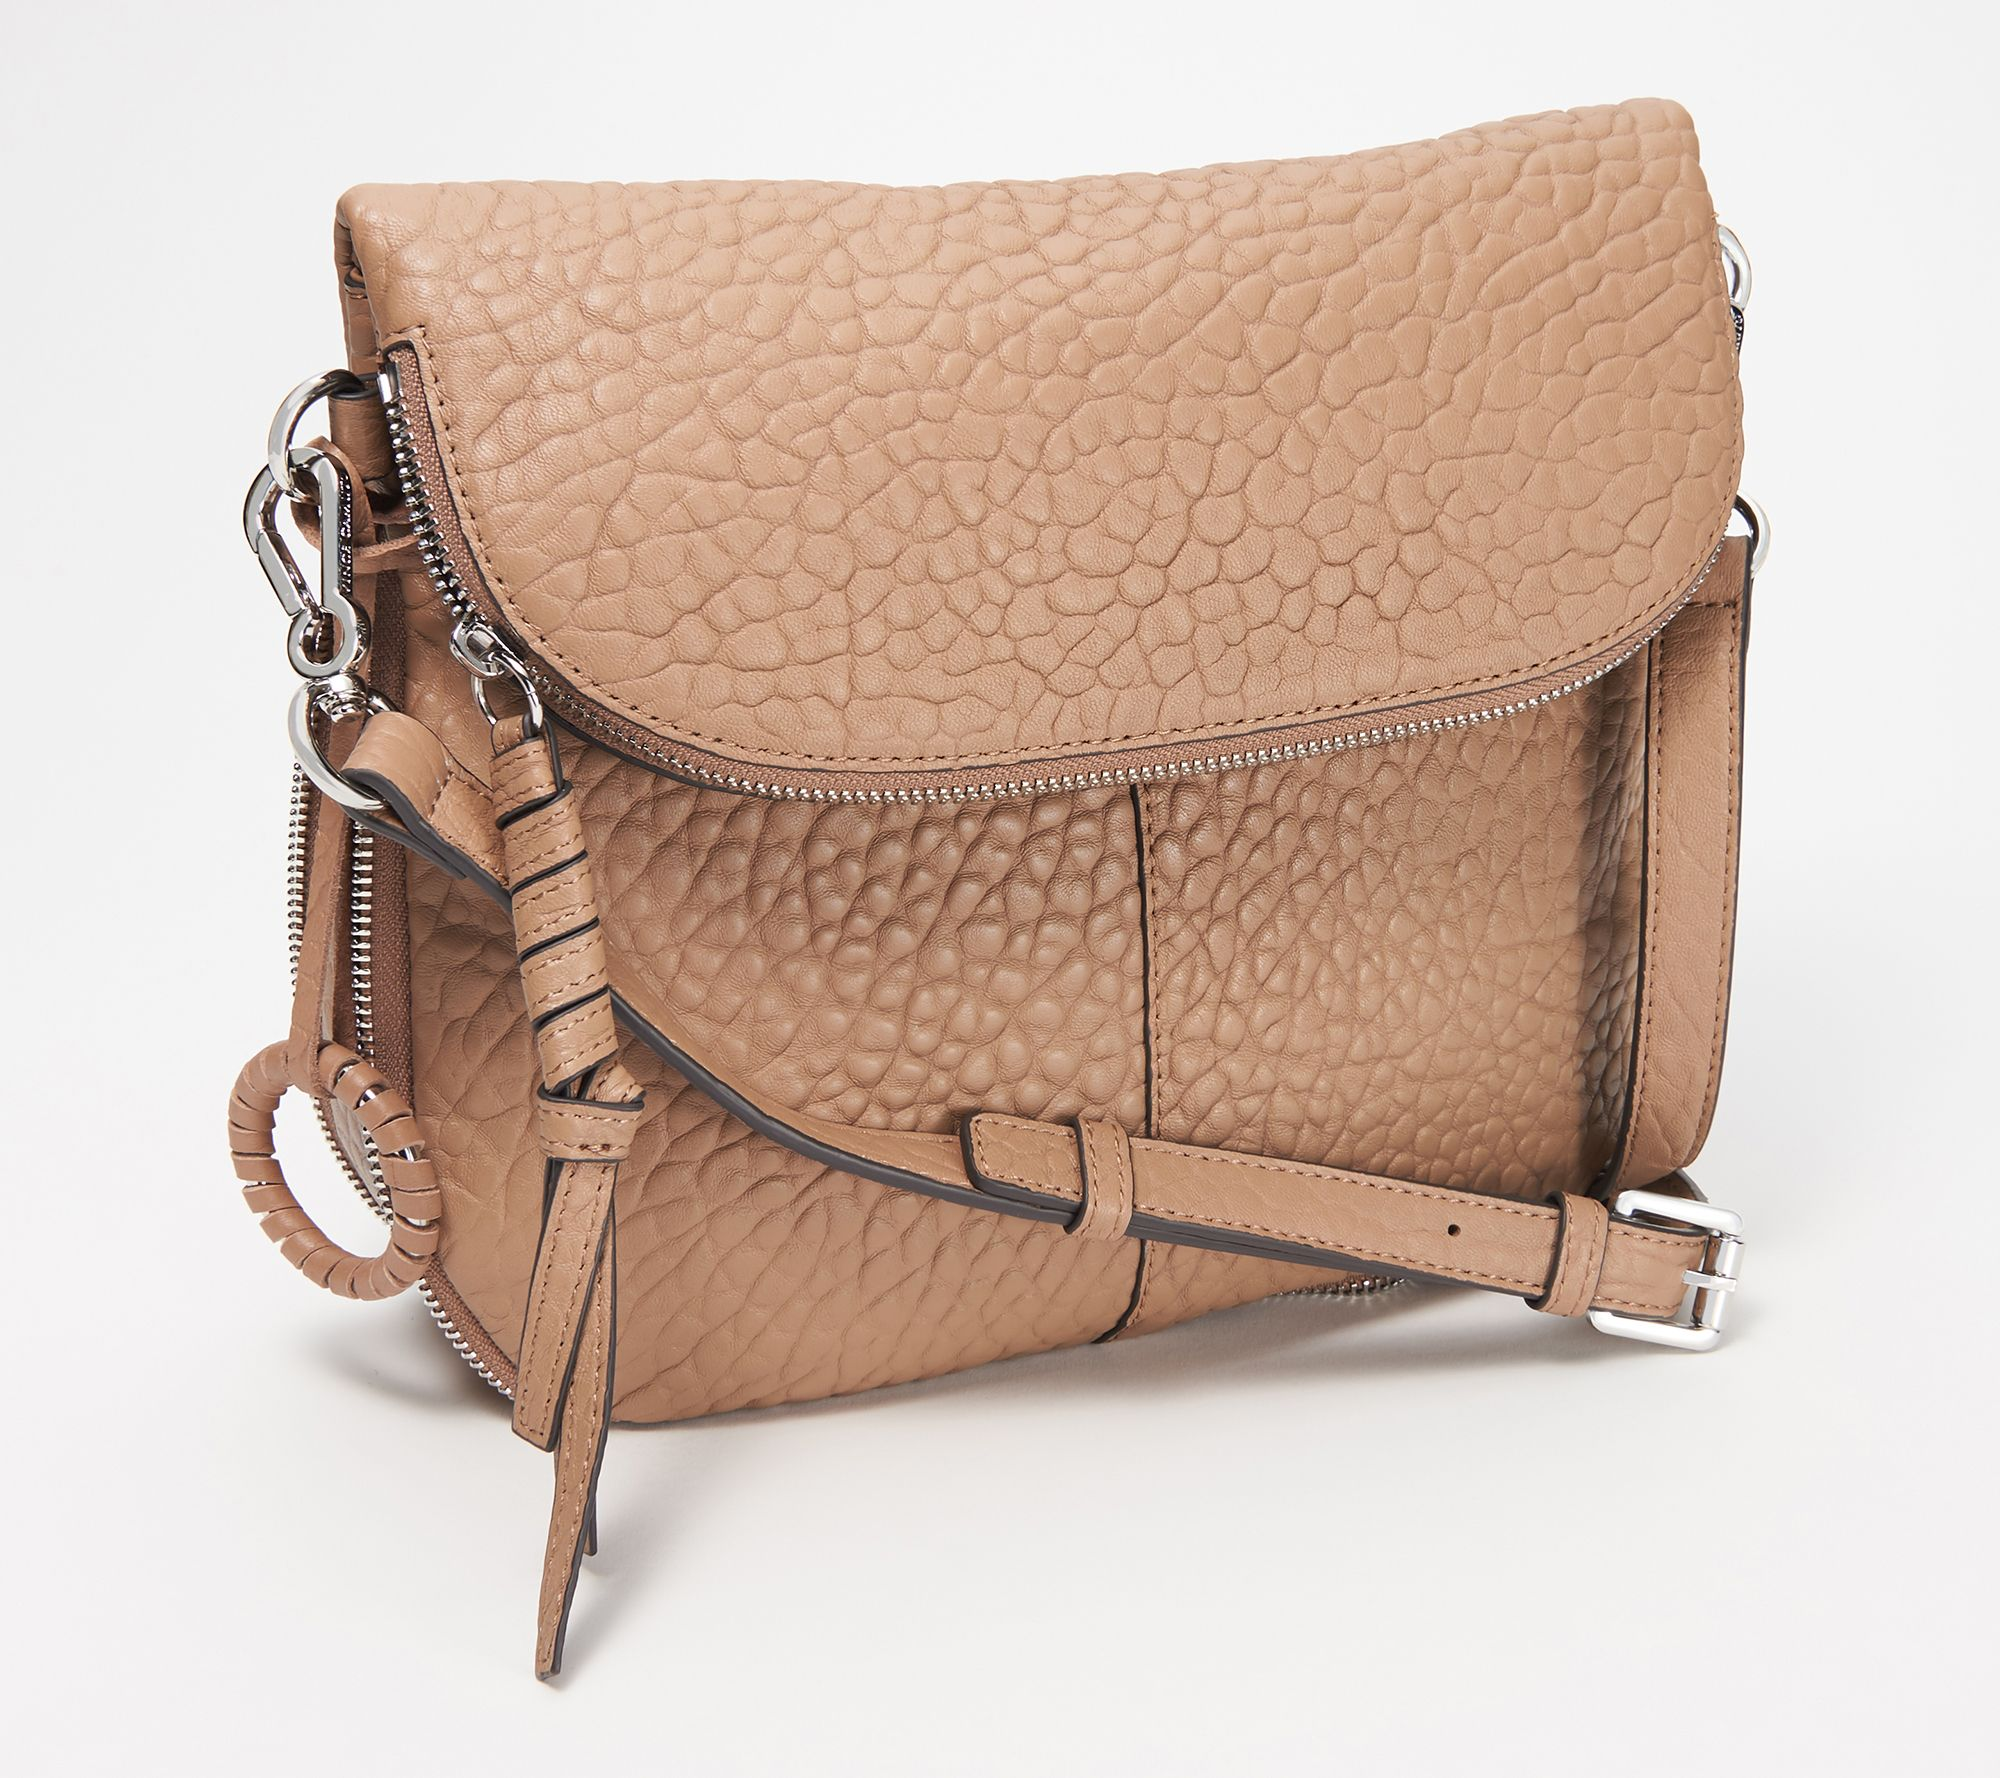 Vince Camuto Lamb Leather Crossbody Bag